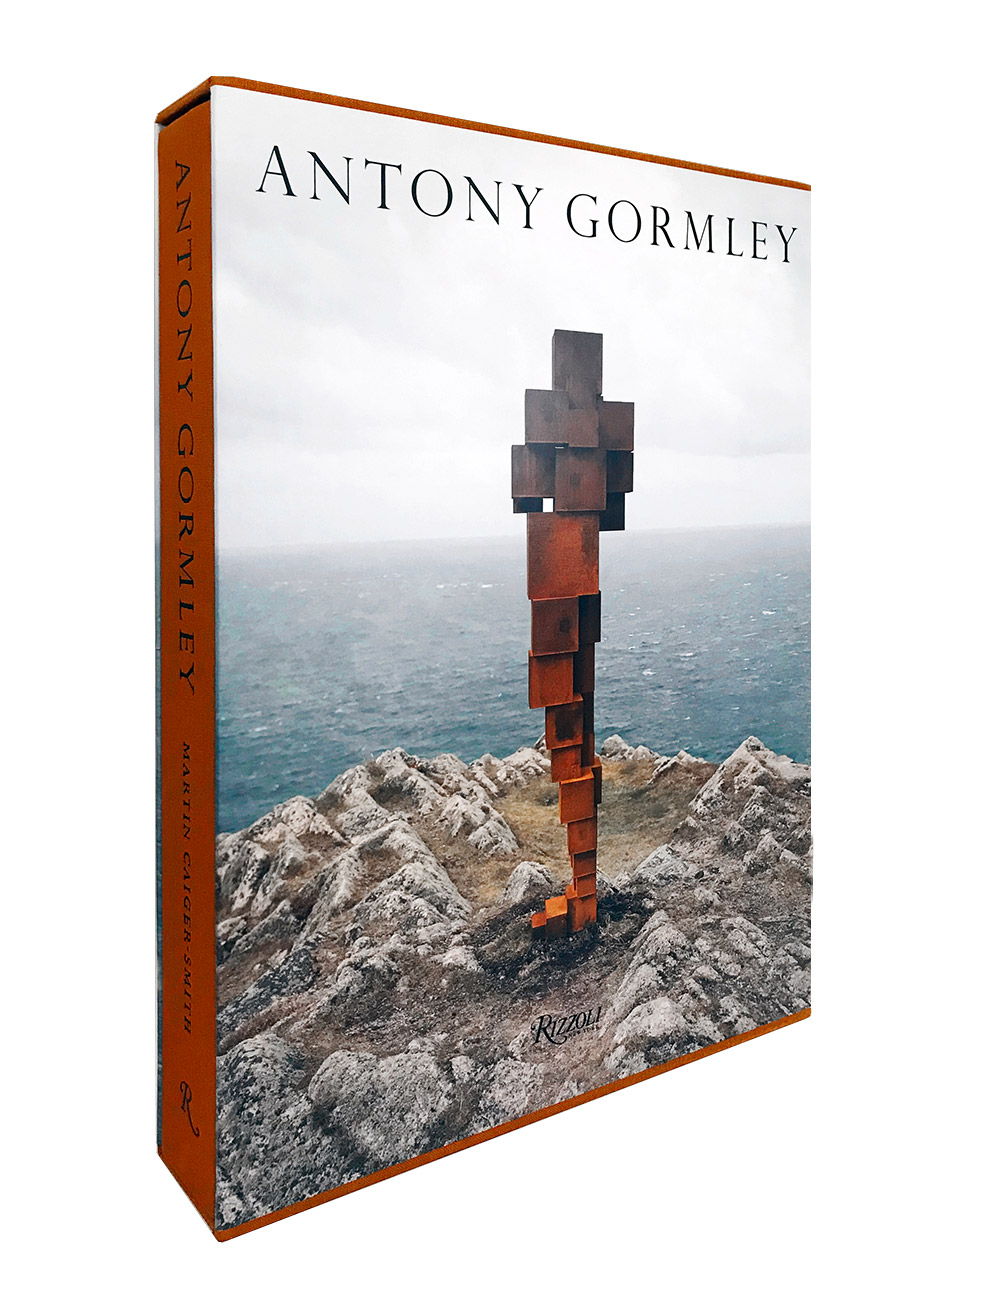 ANTONY GORMLEY, 2017